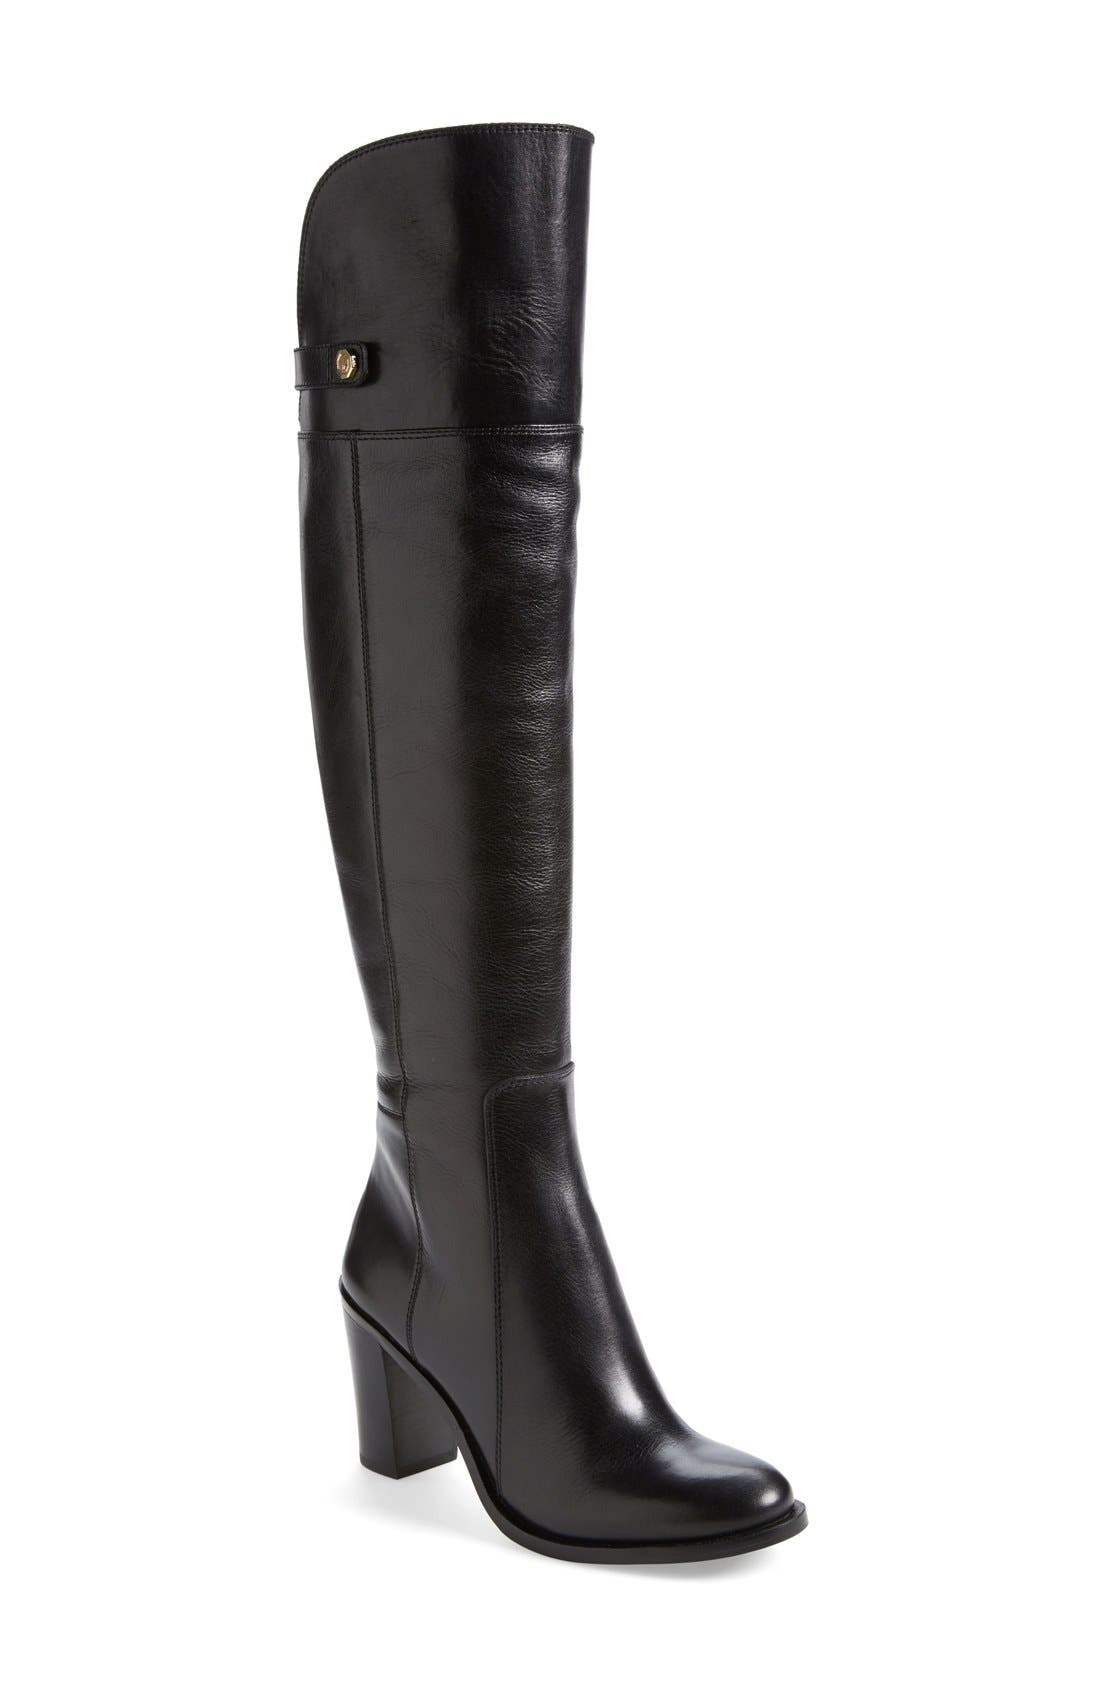 Alternate Image 1 Selected - Louise et Cie 'Navaria' Over the Knee Leather Boot (Women)